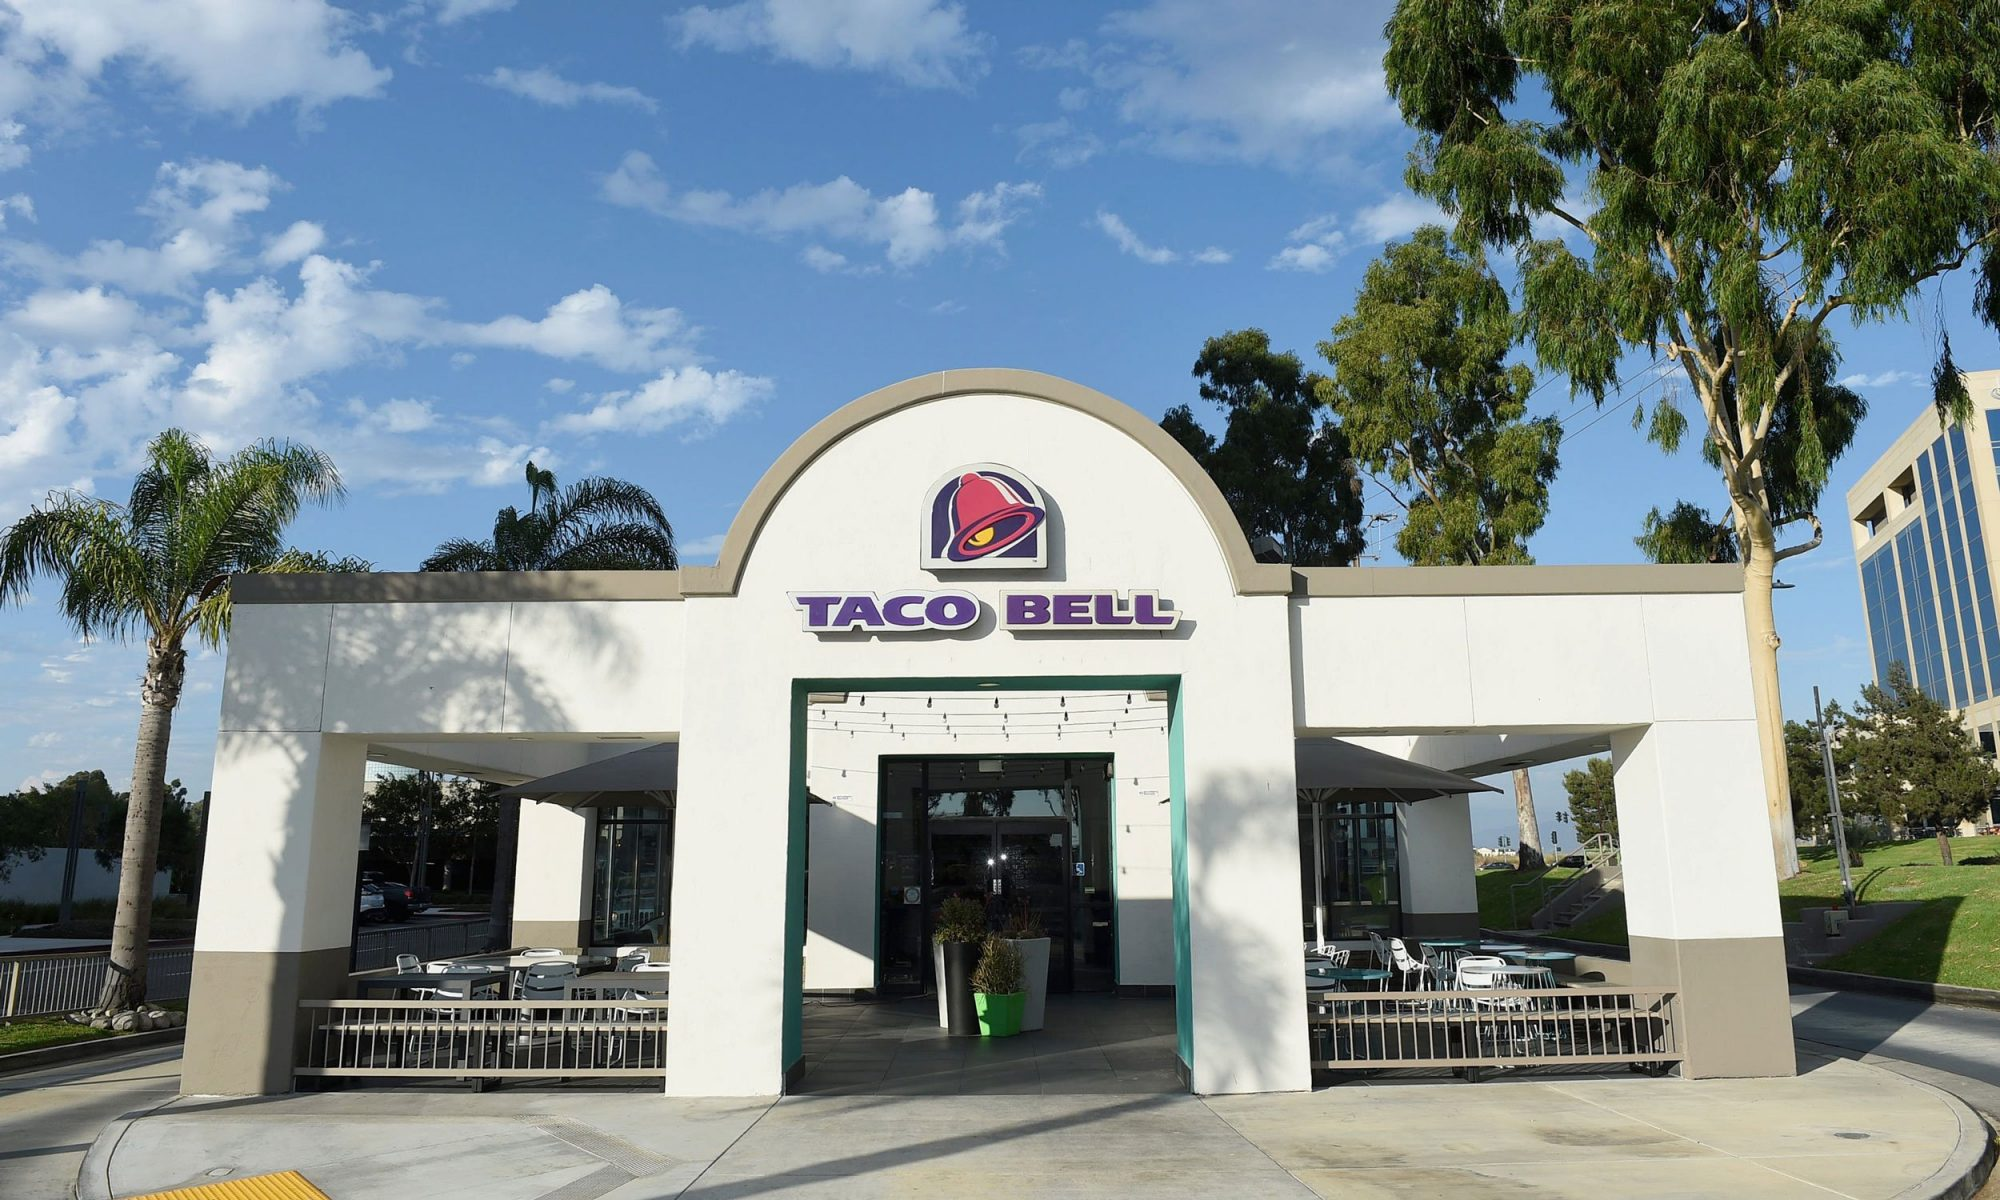 EC: Taco Bell Sells Beer Now